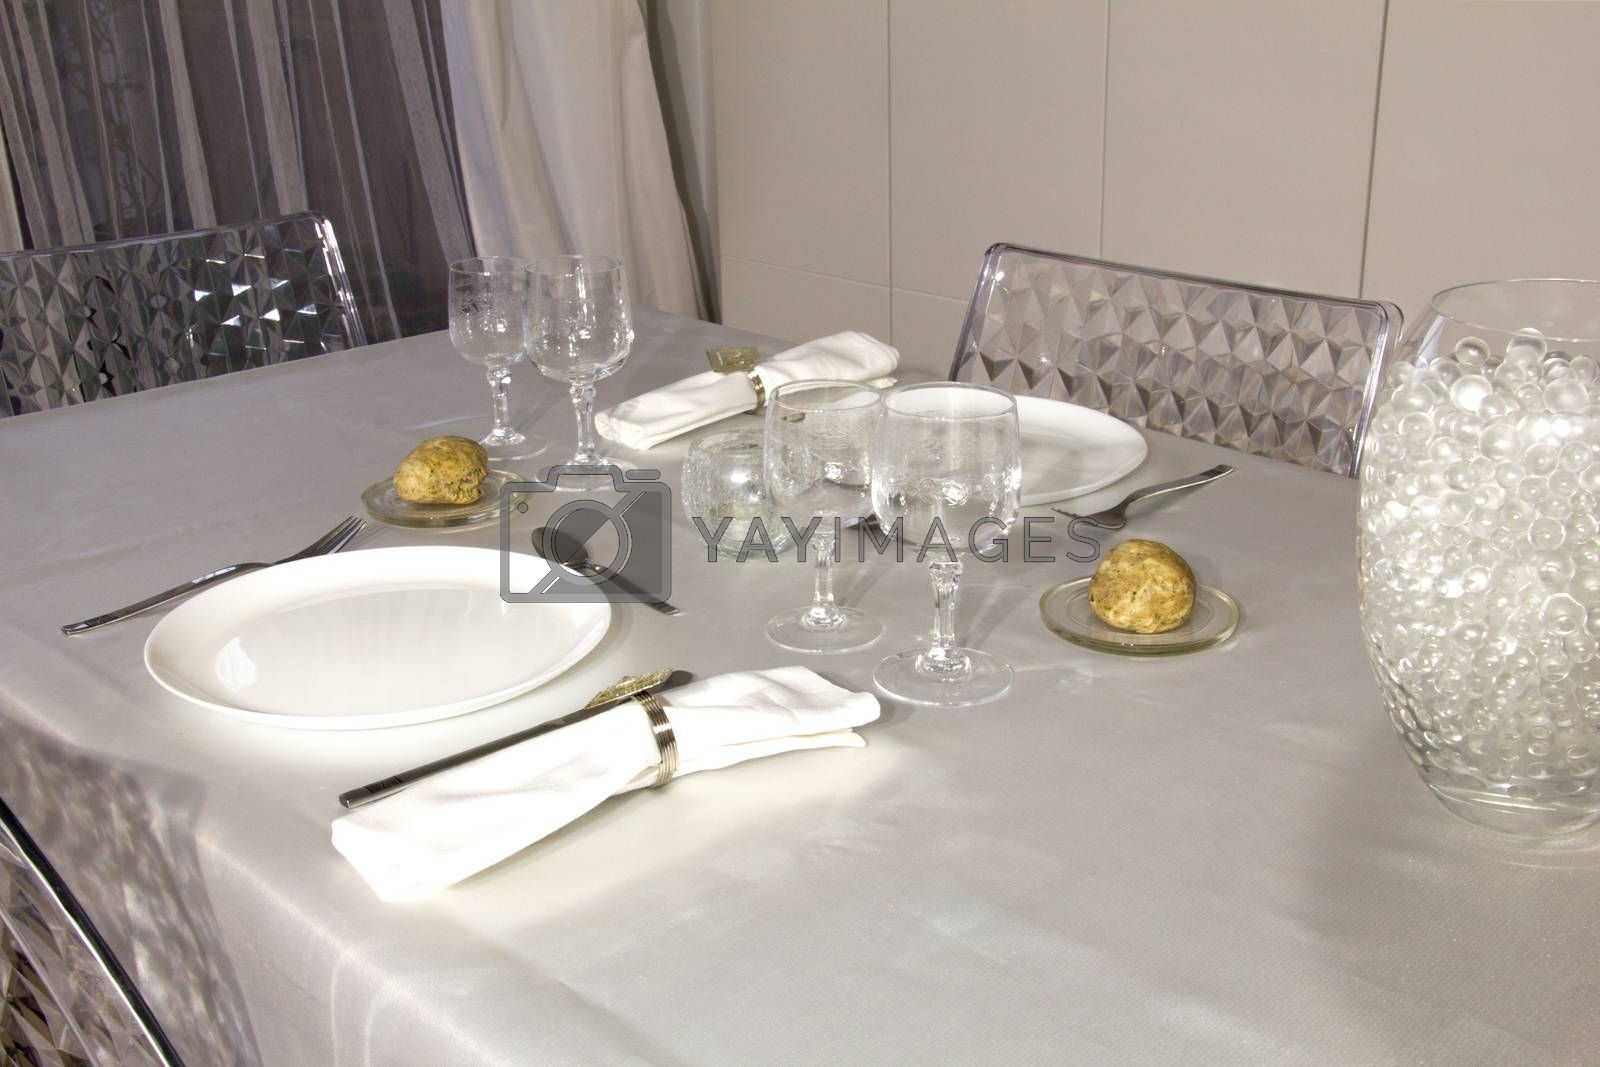 Dishes, cups, cutlery, napkins,candle, decor and bread served on the table with white tablecloth